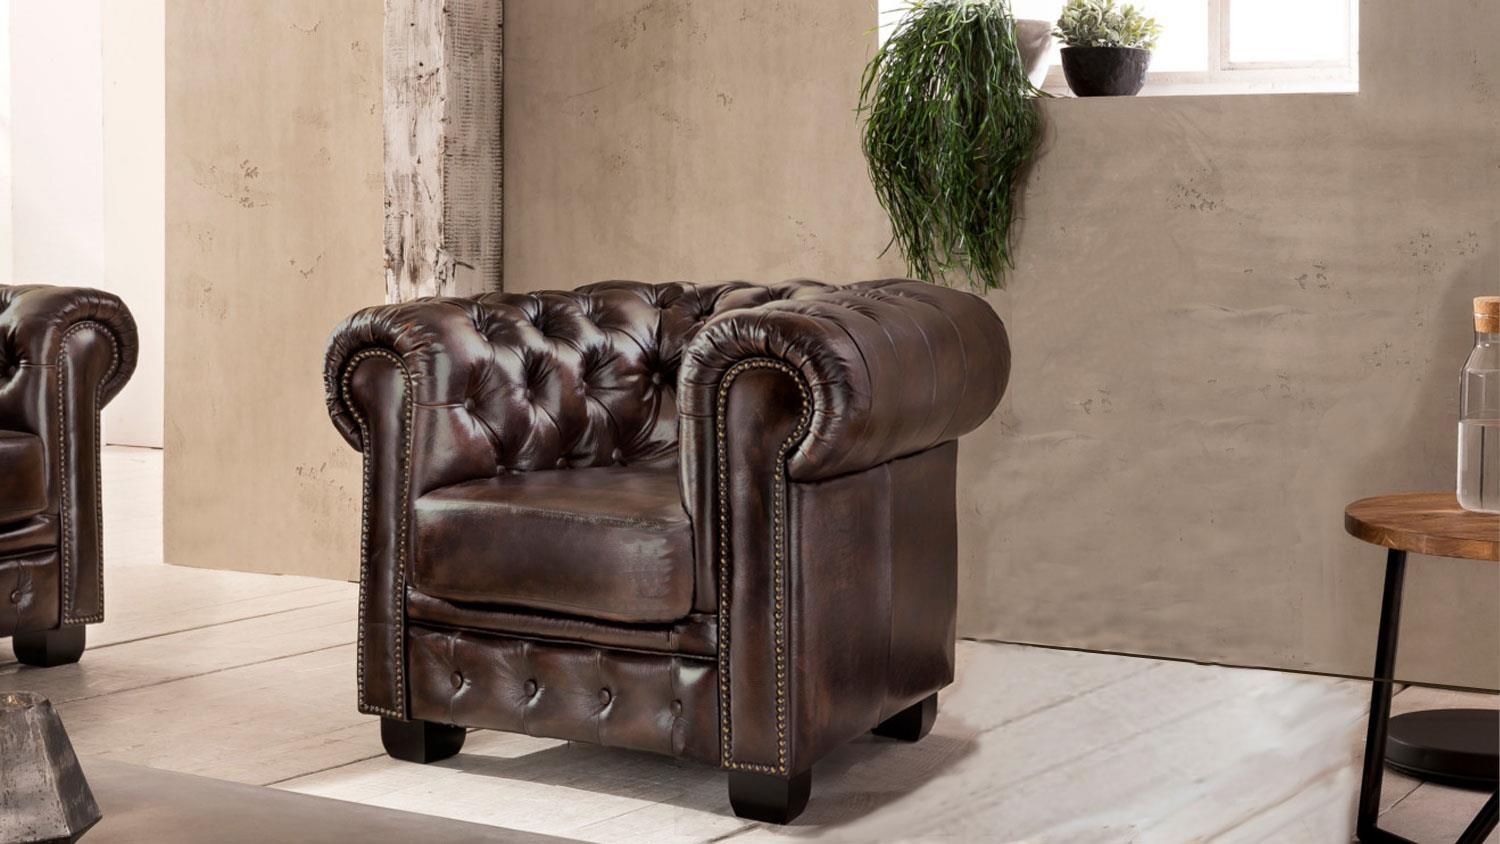 Sessel Chesterfield Chesterfield Sessel Leder Braun Antik Luxus Hochwertig